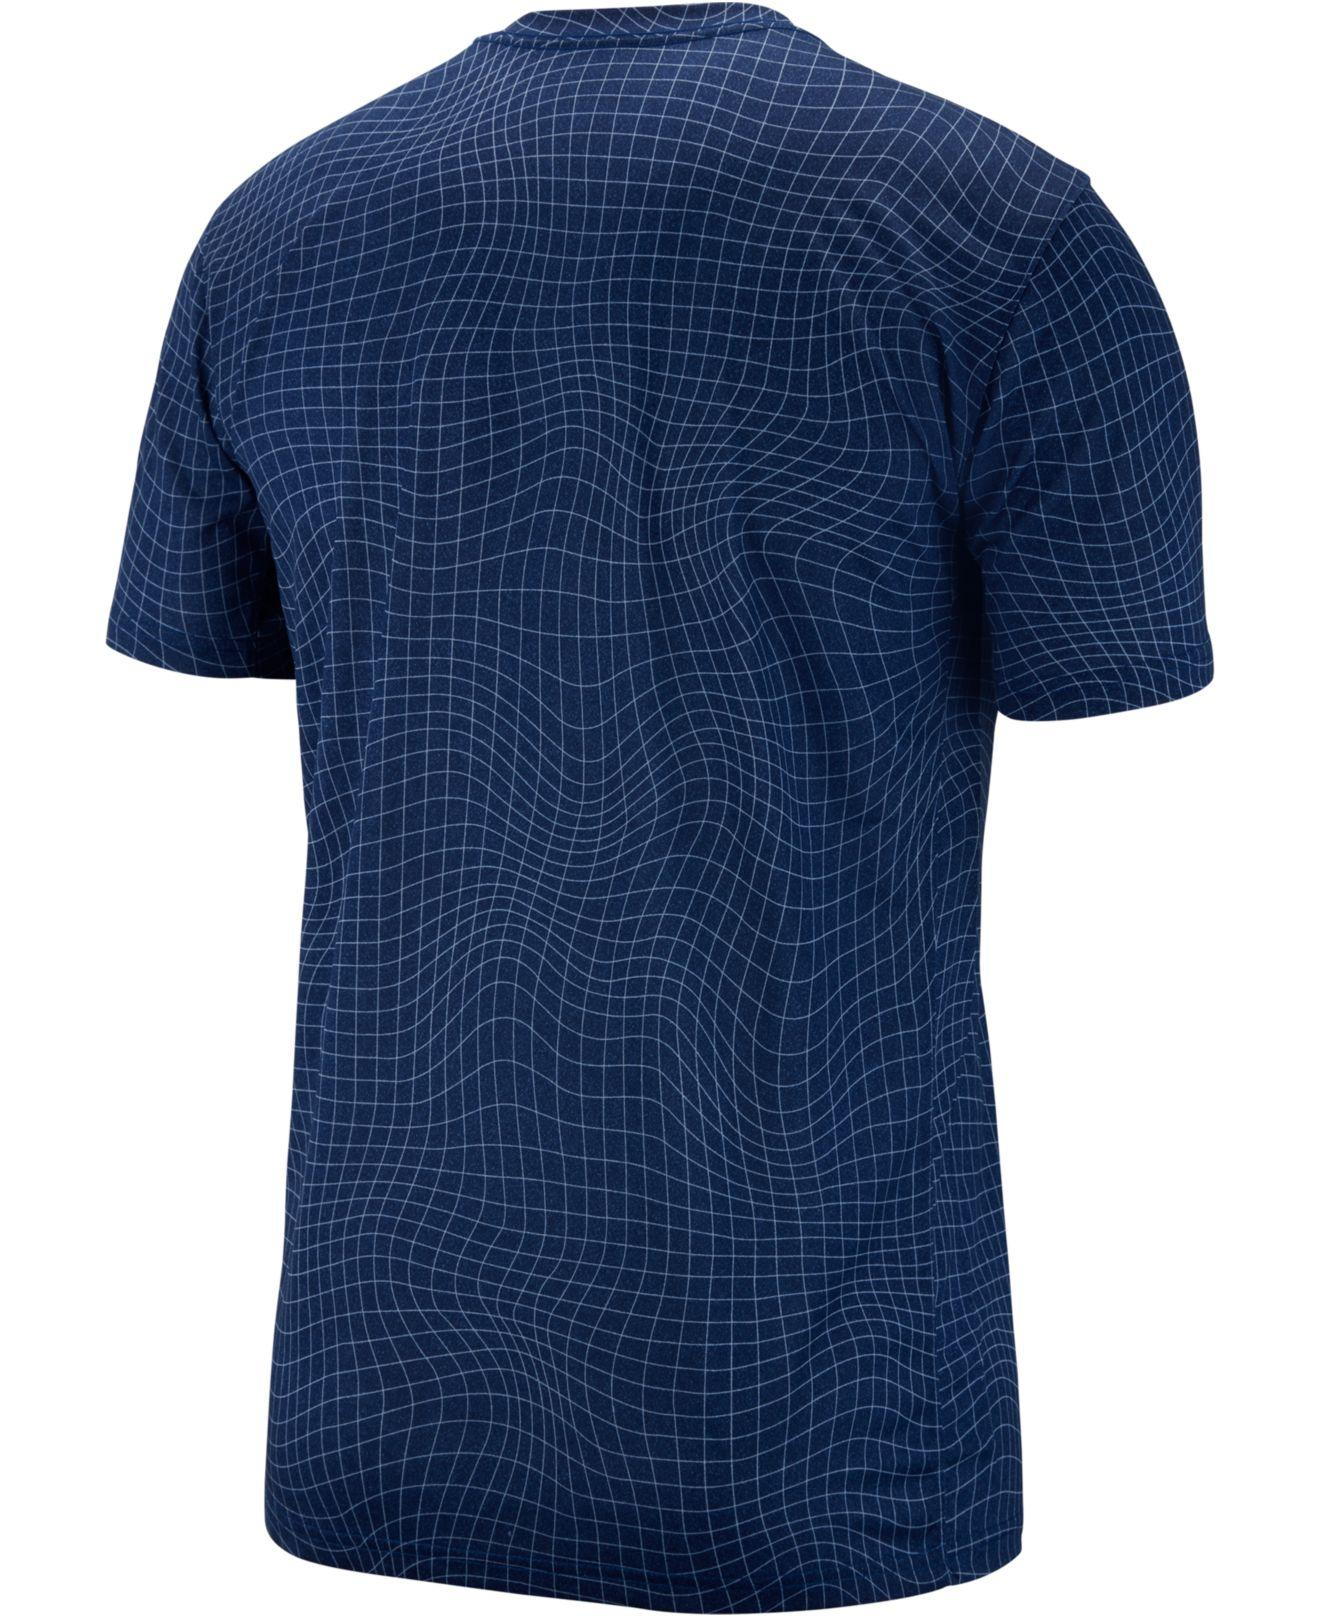 73adf62c8 Lyst - Nike Legend Dri-fit Training T-shirt in Blue for Men